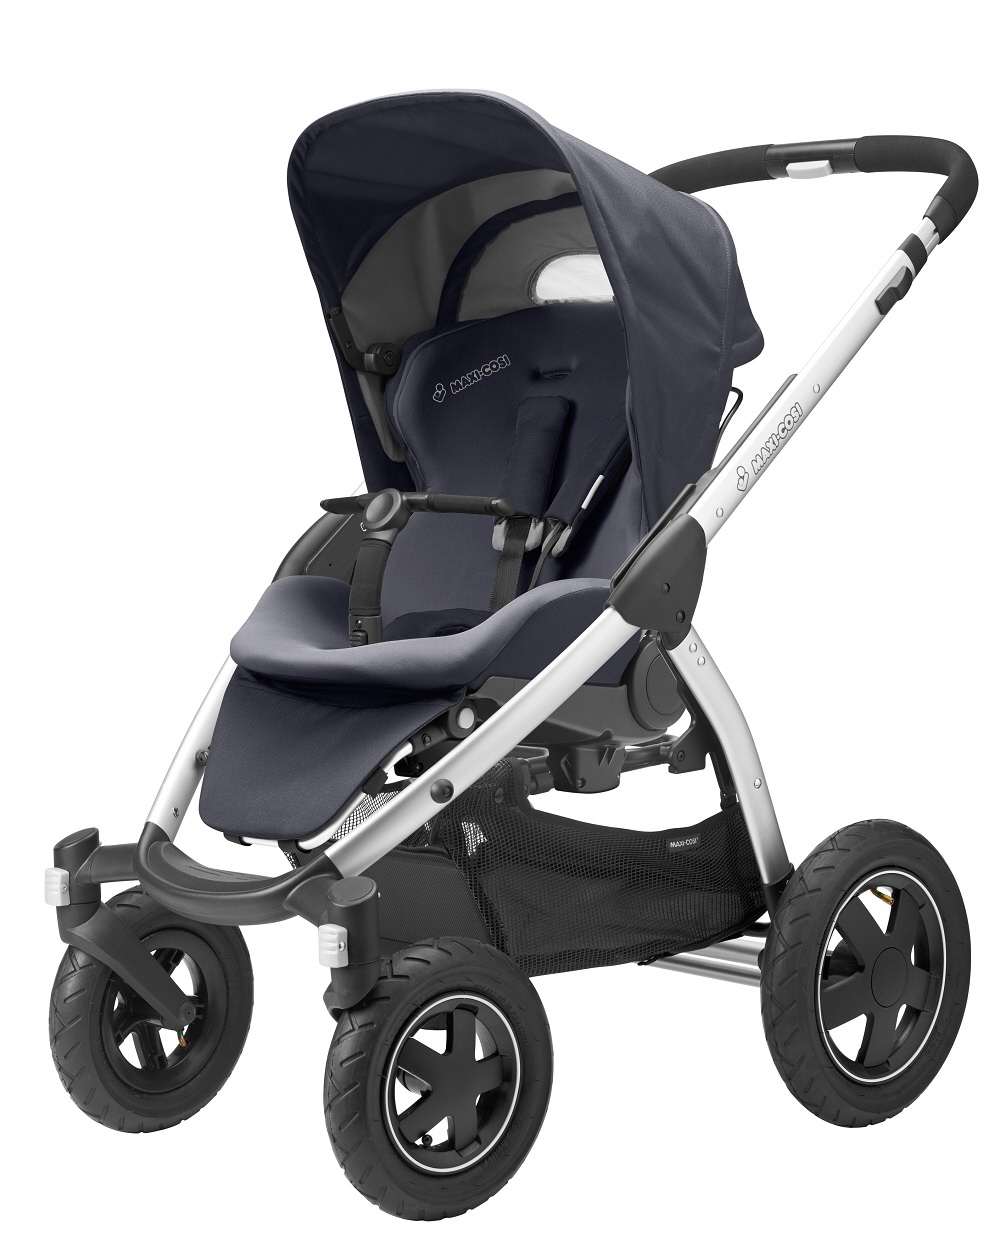 maxi cosi mura 4 stroller 2015 total black buy at kidsroom strollers. Black Bedroom Furniture Sets. Home Design Ideas